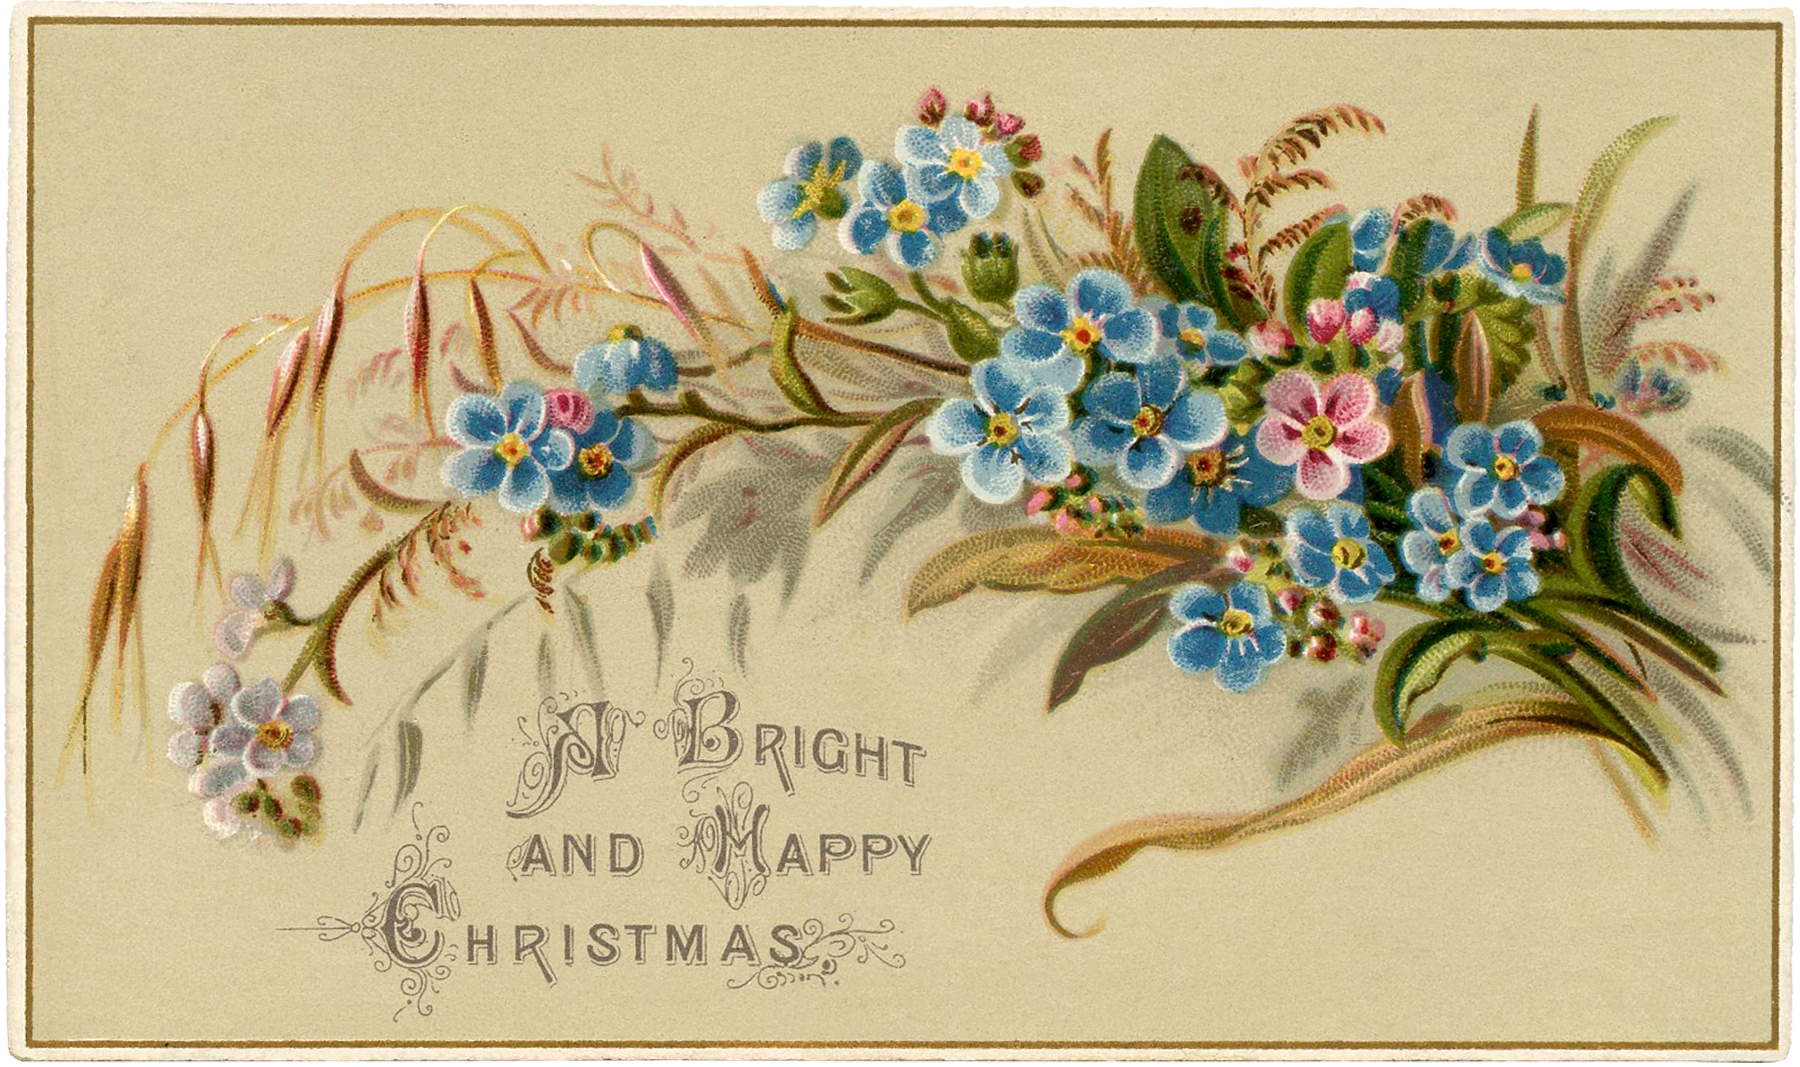 Vintage Floral Christmas Card! - The Graphics Fairy: thegraphicsfairy.com/vintage-floral-christmas-card